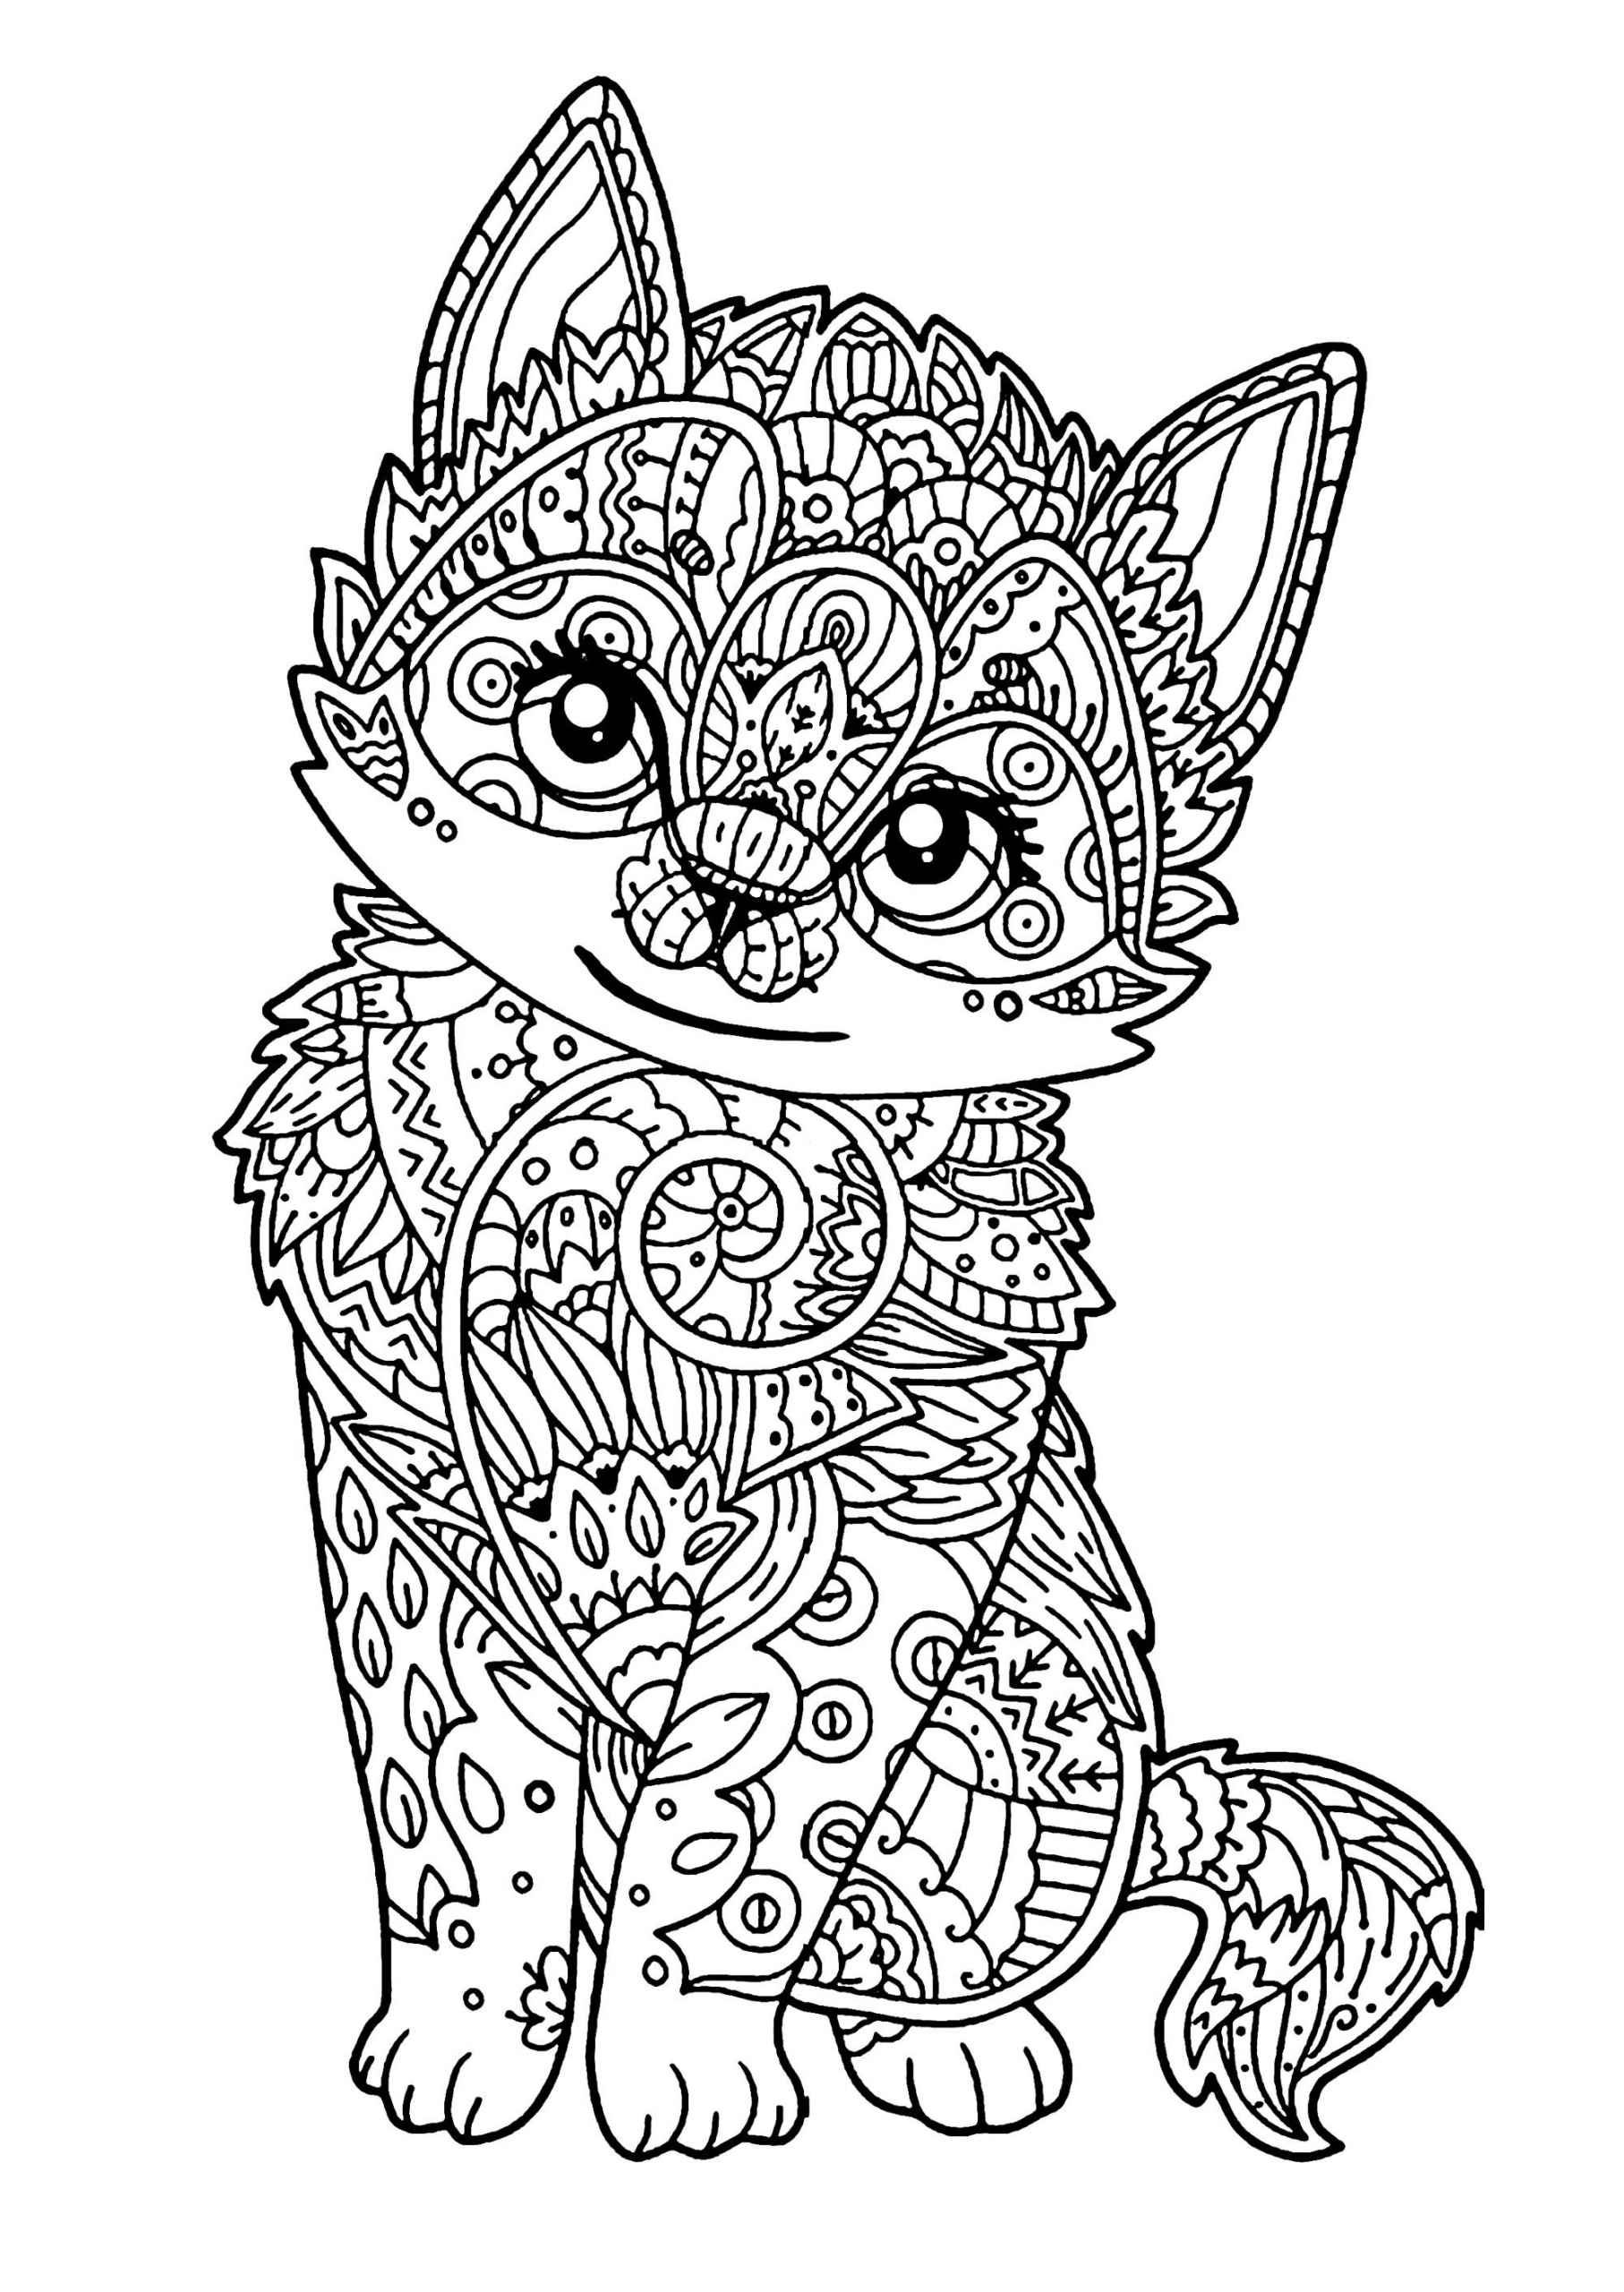 New 50 Free Printable Cat Coloring Pages For Kids Online In 2020 Kitty Coloring Kitten Coloring Book Animal Coloring Pages